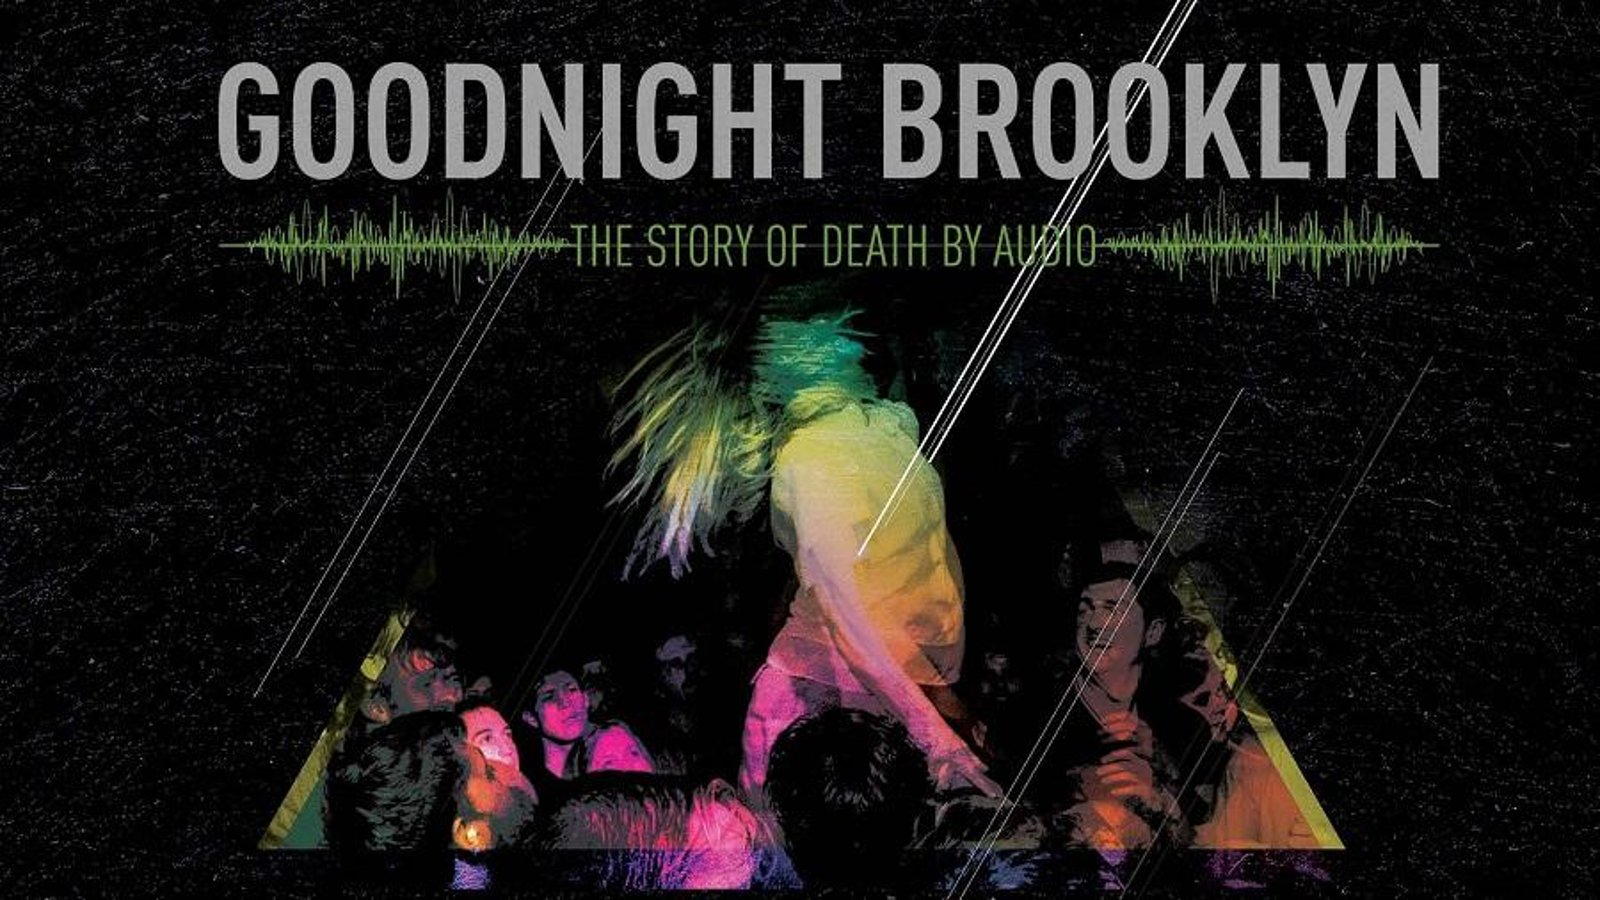 Goodnight Brooklyn - The Story of Death by Audio - An Underground Music Venue